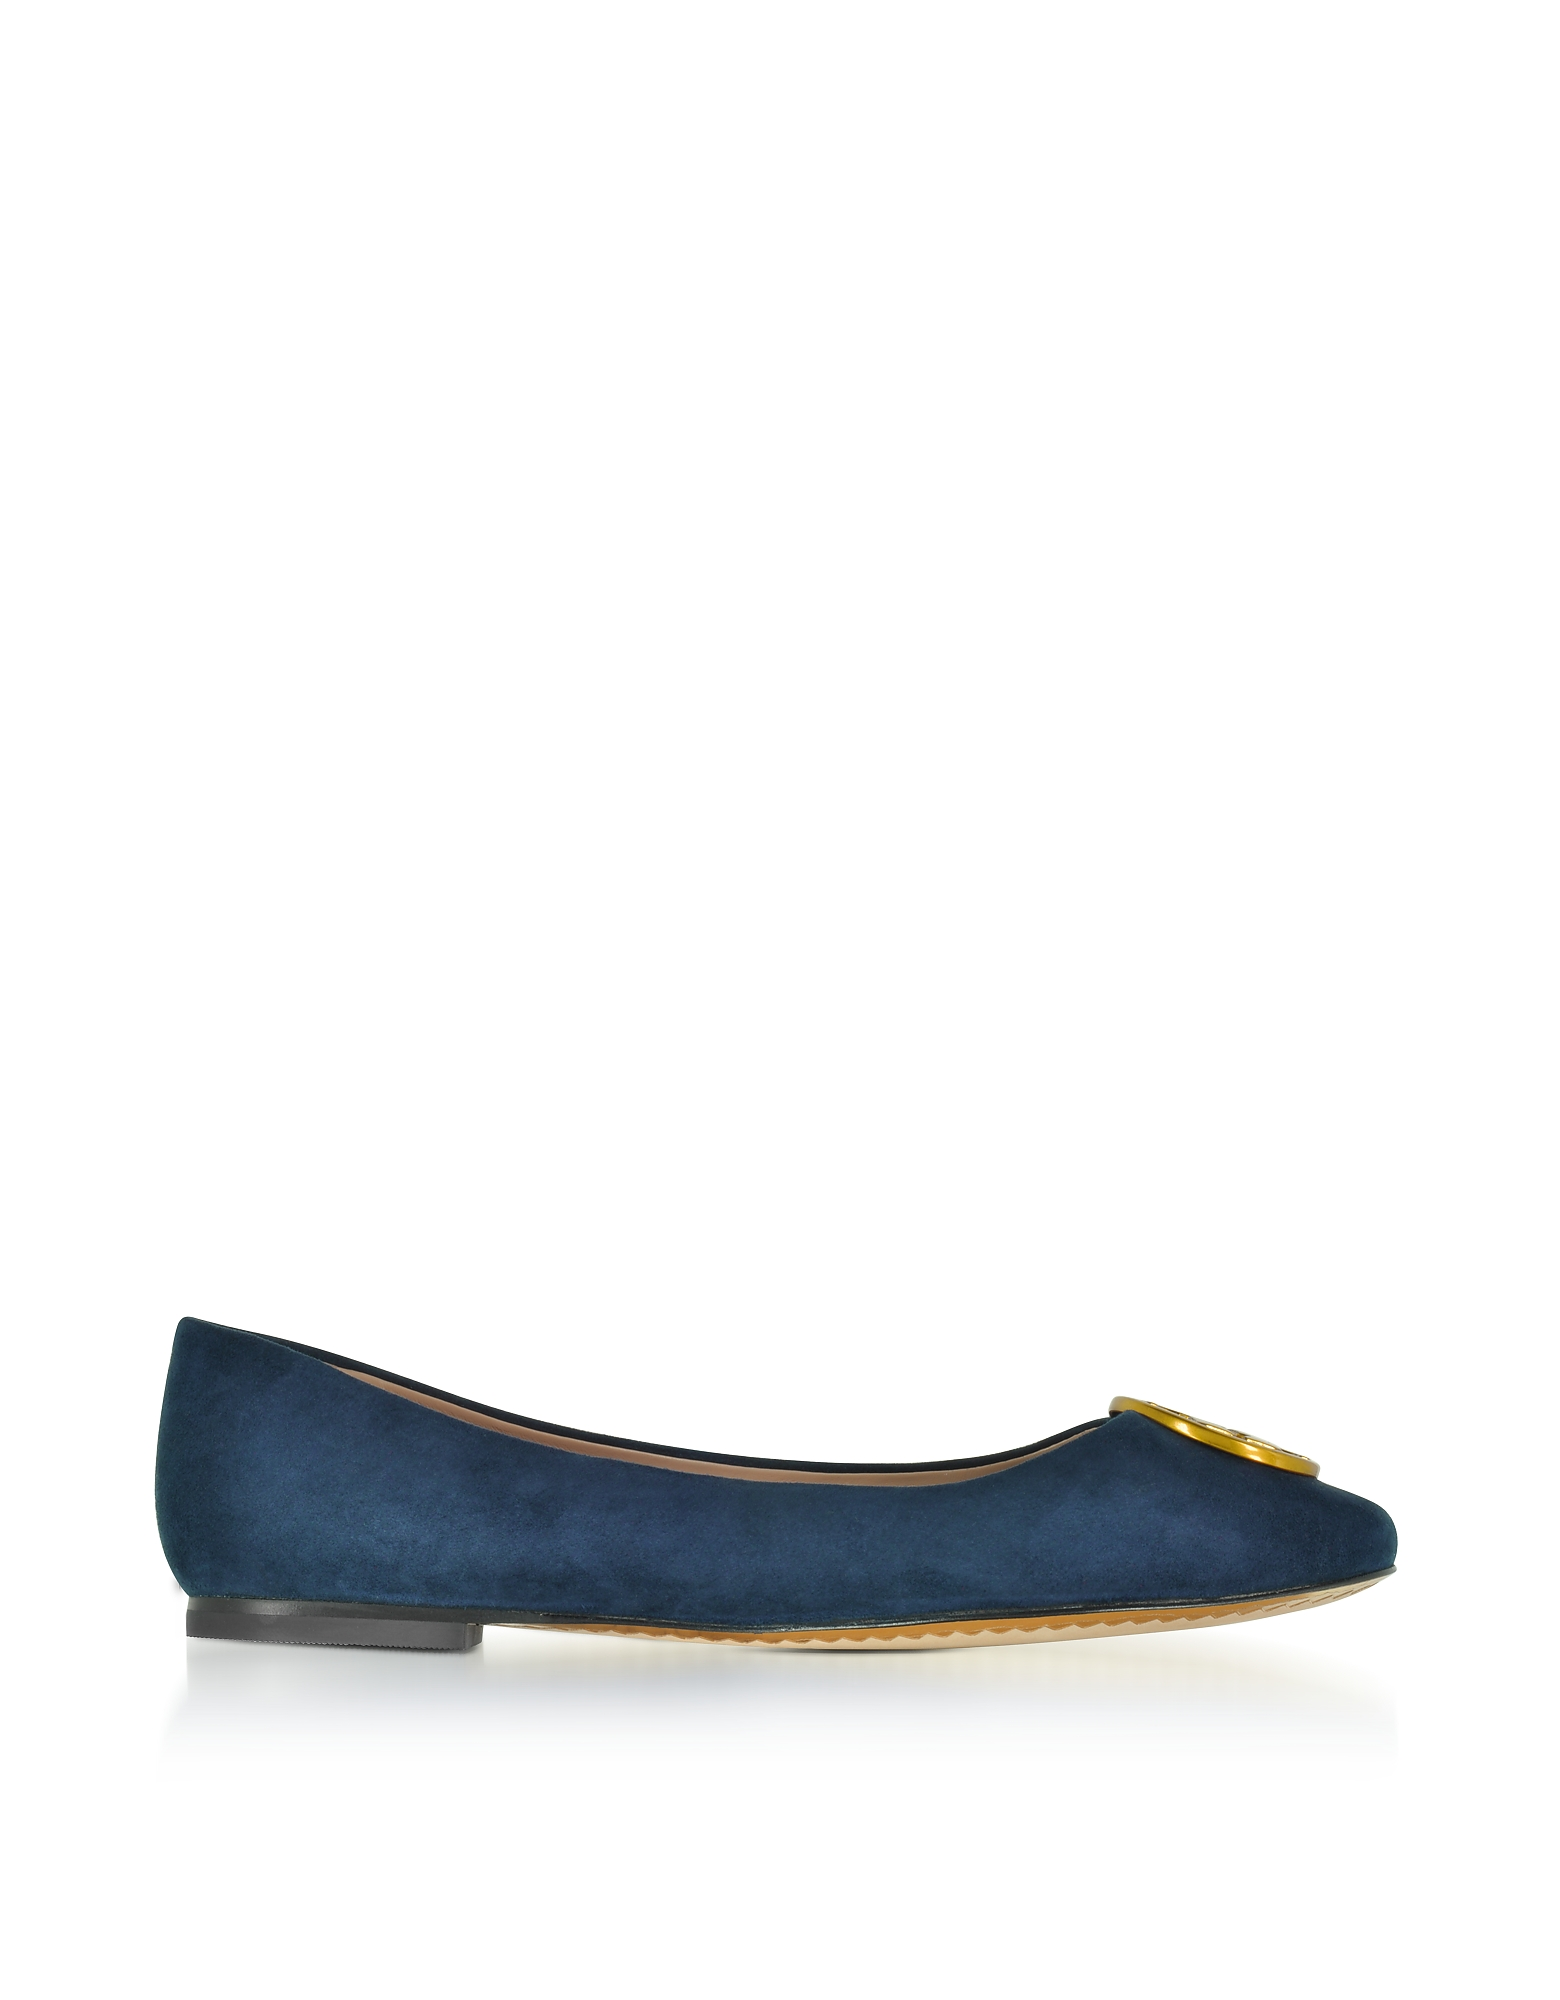 Tory Burch Shoes, Chelsea Royal Navy Suede Ballet Flats